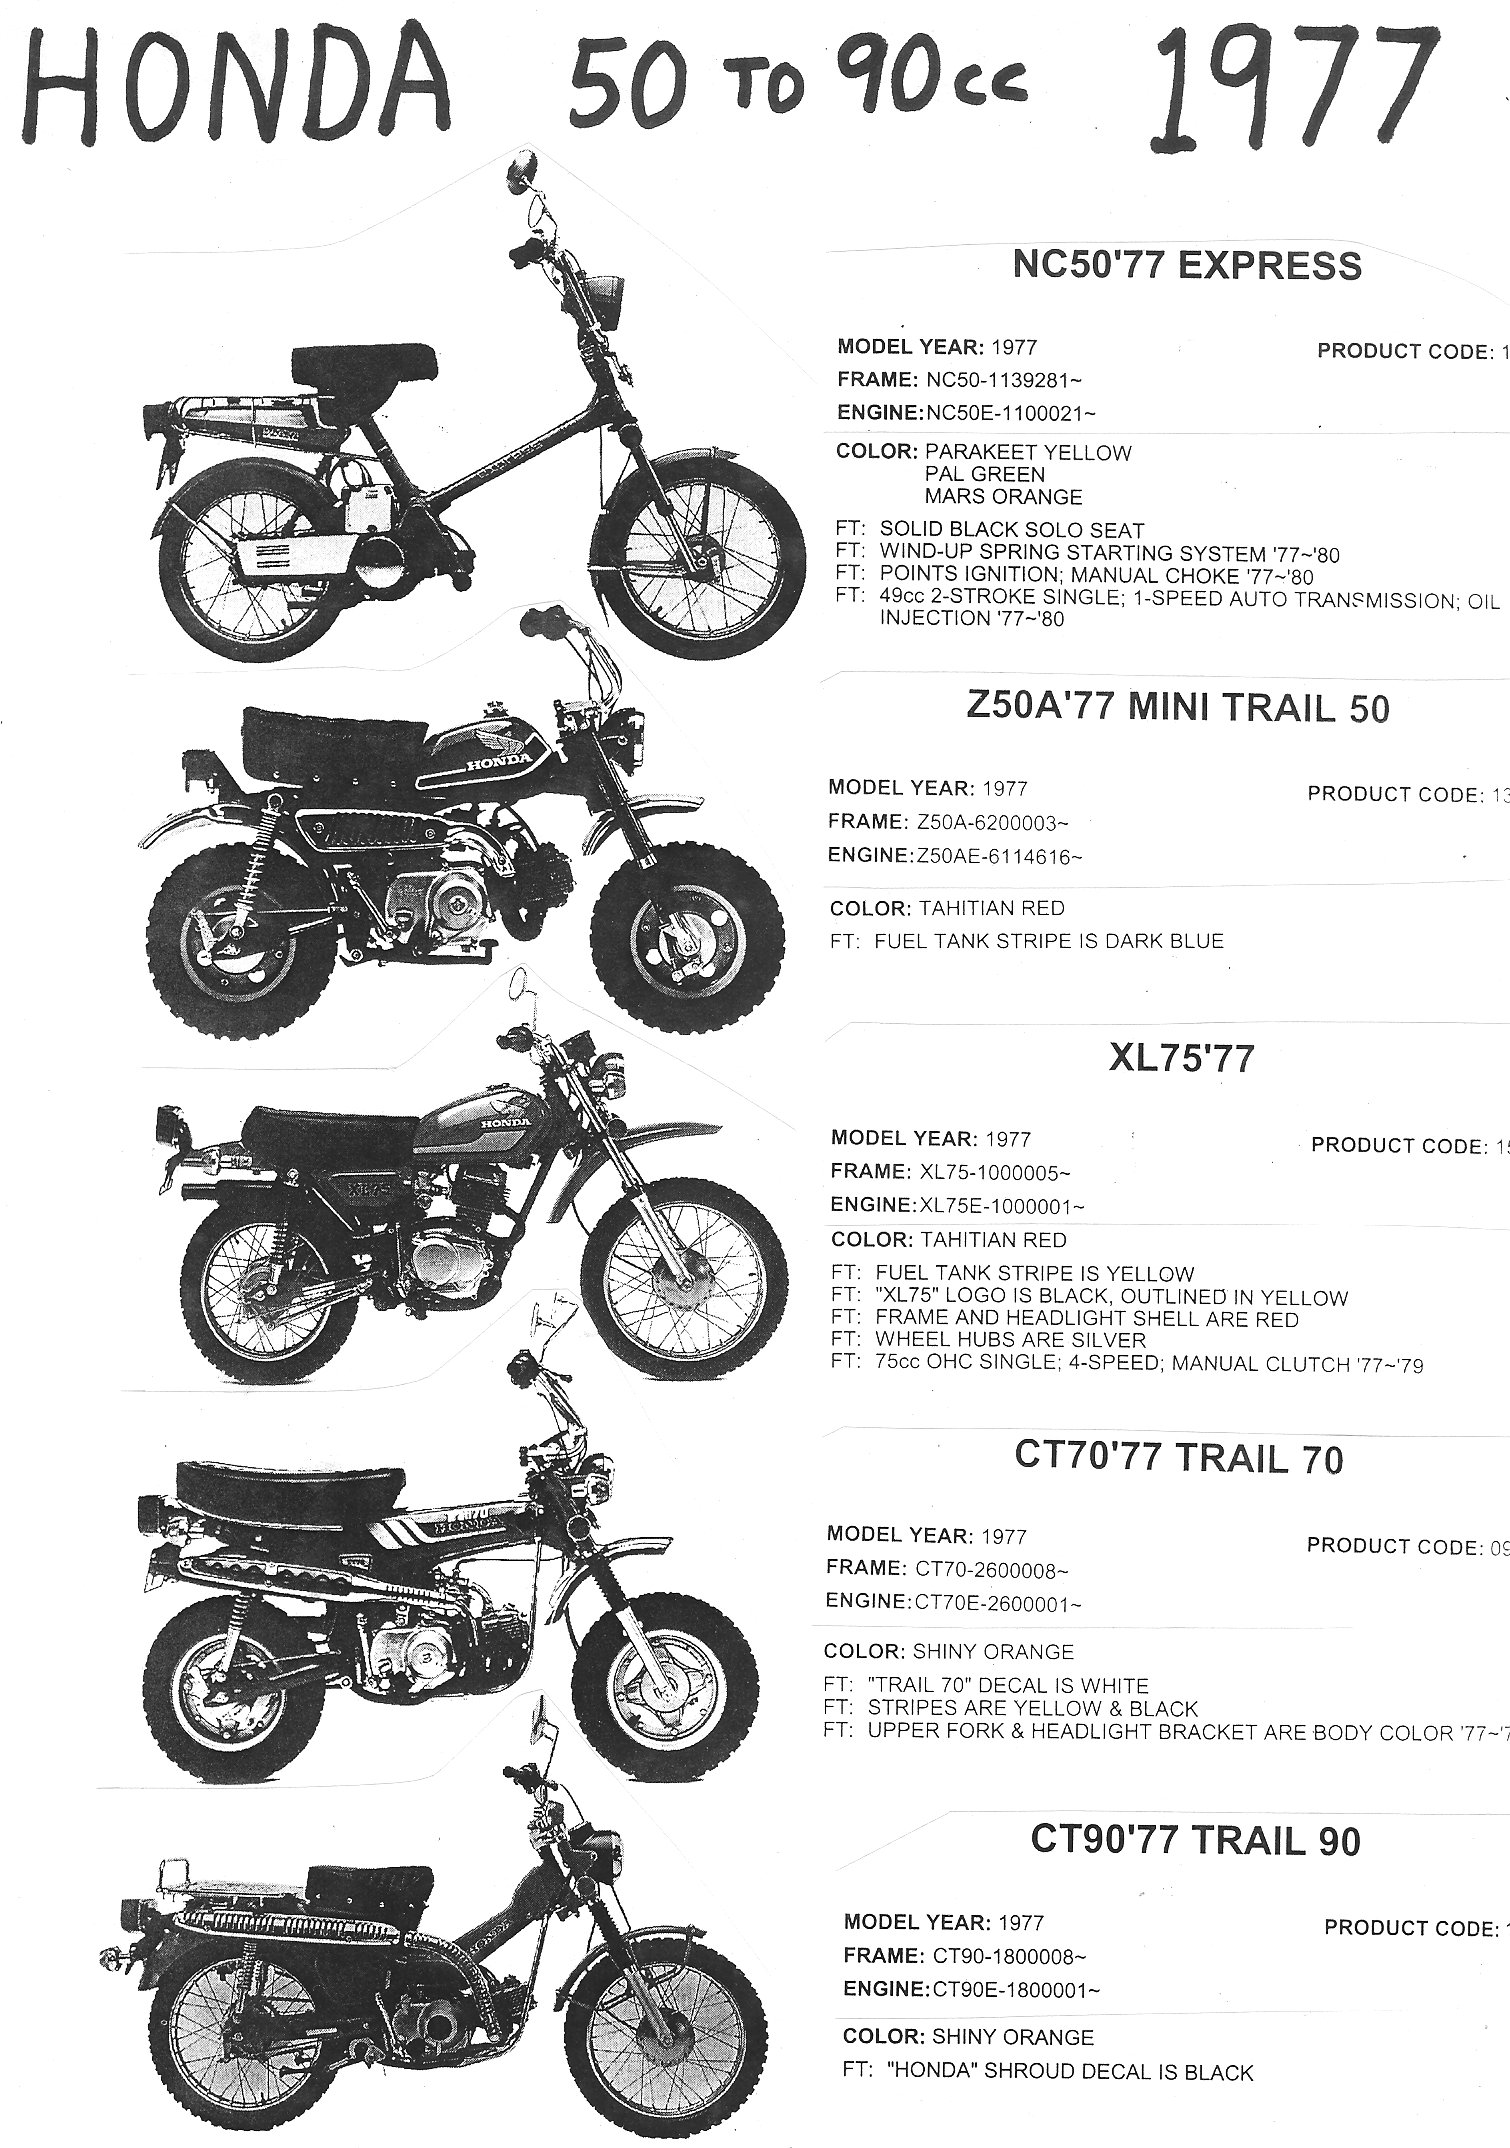 Honda Mini Trail 70 Wiring Schematic | Wiring Liry on honda trail 70 engine, honda atc 70 clutch diagram, honda trx 70 wiring diagram, honda trail 70 accessories, honda trail 70 owners manual, honda trail 70 battery, honda trail 70 parts list, honda xl70 wiring-diagram, honda trail 70 parts catalog, honda trail 70 carburetor, honda trail 70 specifications, honda trail 70 exhaust, honda trail 70 tires, honda trail 70 fuel tank, honda mini trail 70 wiring, honda motorcycle wiring schematics, honda trail 70 speedometer, honda trail 70 fuel system, honda trail 70 clutch diagram, honda atc wiring-diagram,